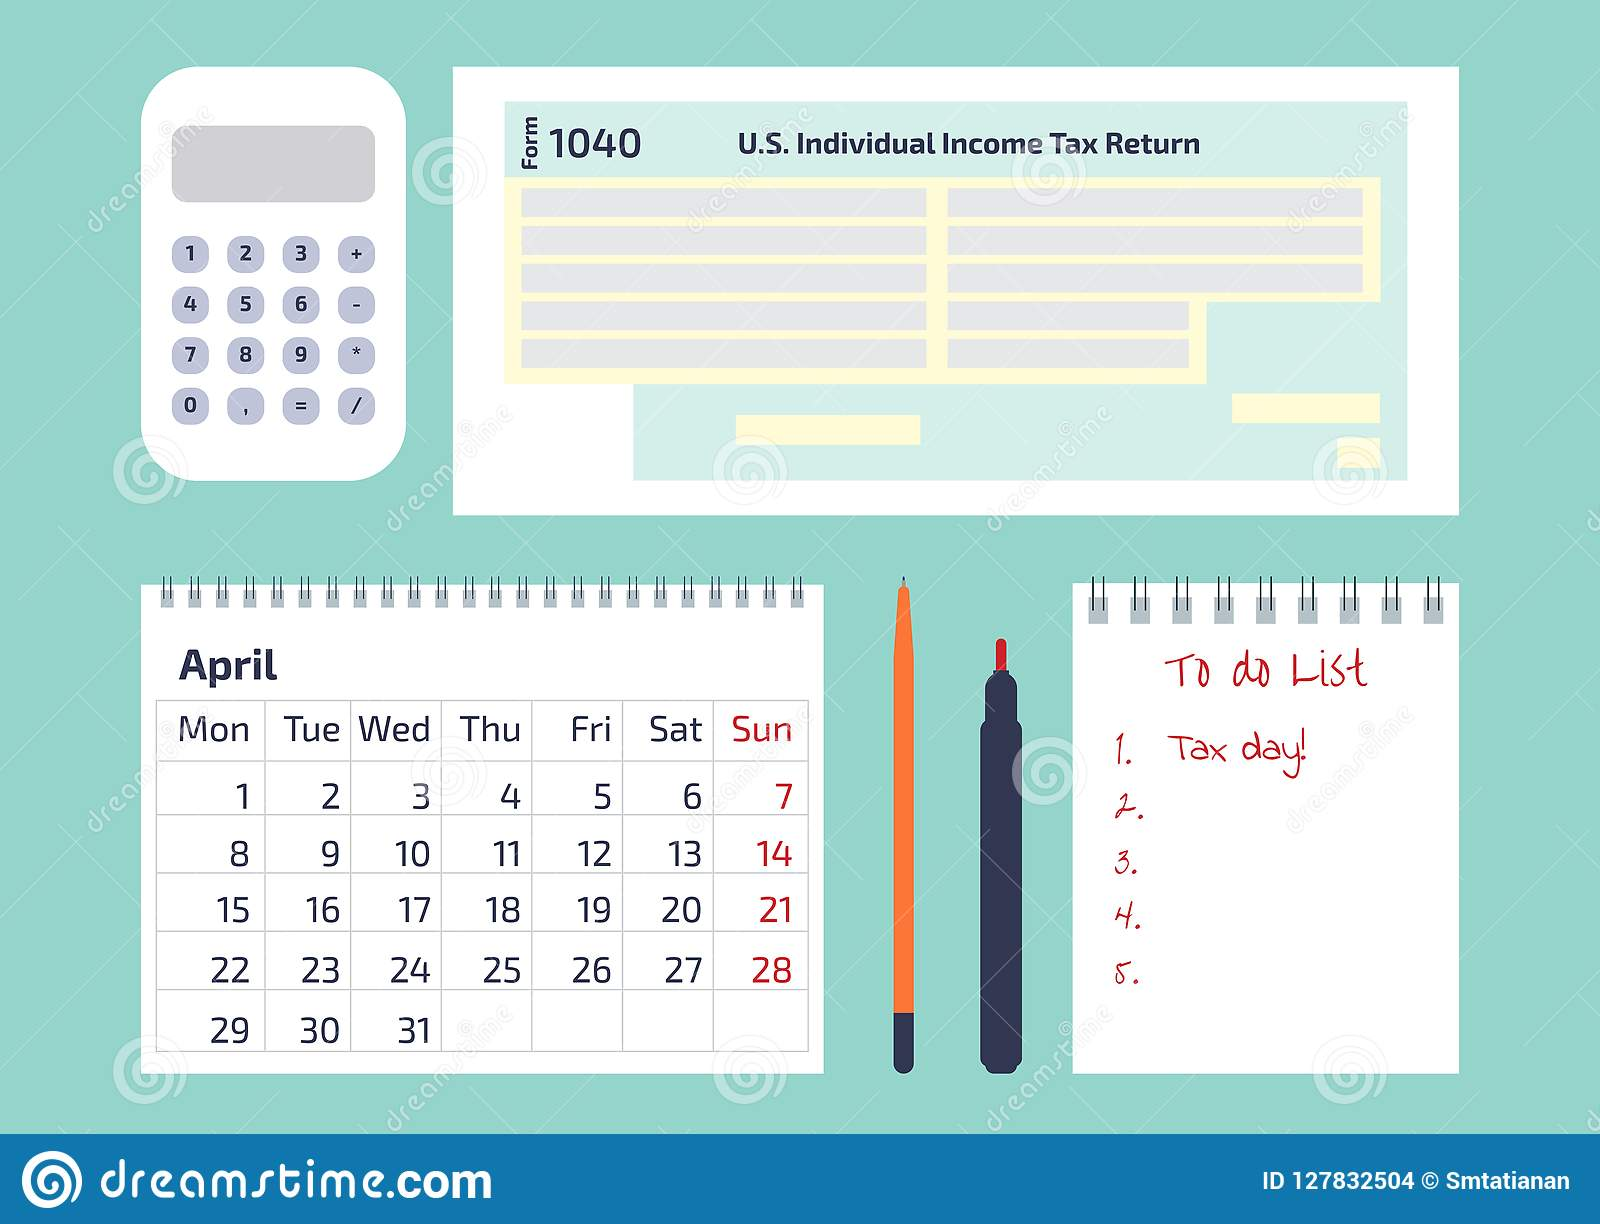 A Calculator, A Pen, A Calendar And 1040 Income Tax Form For IRS